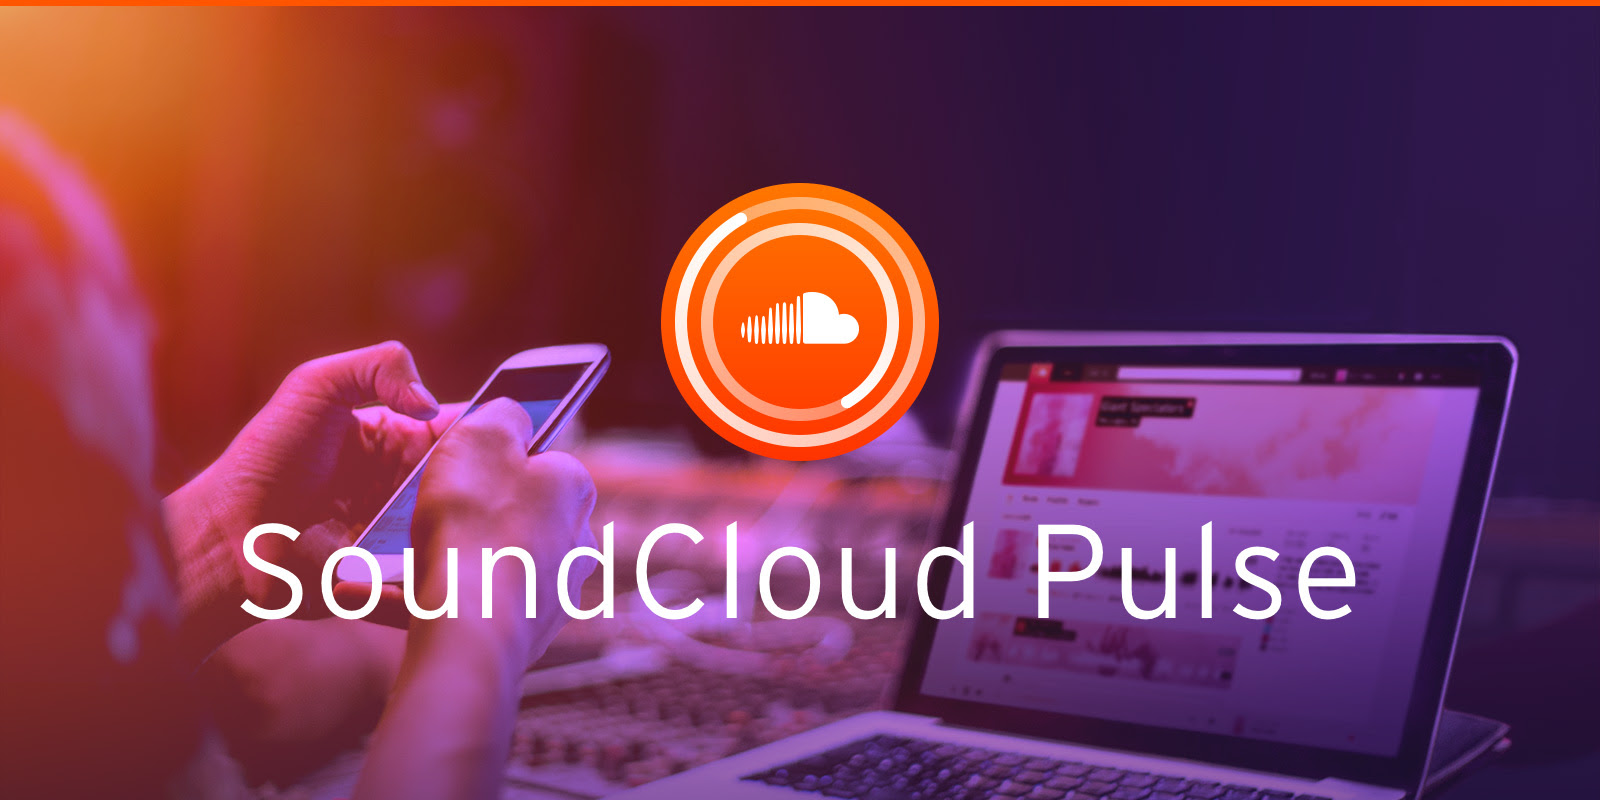 SoundCloud Pulso